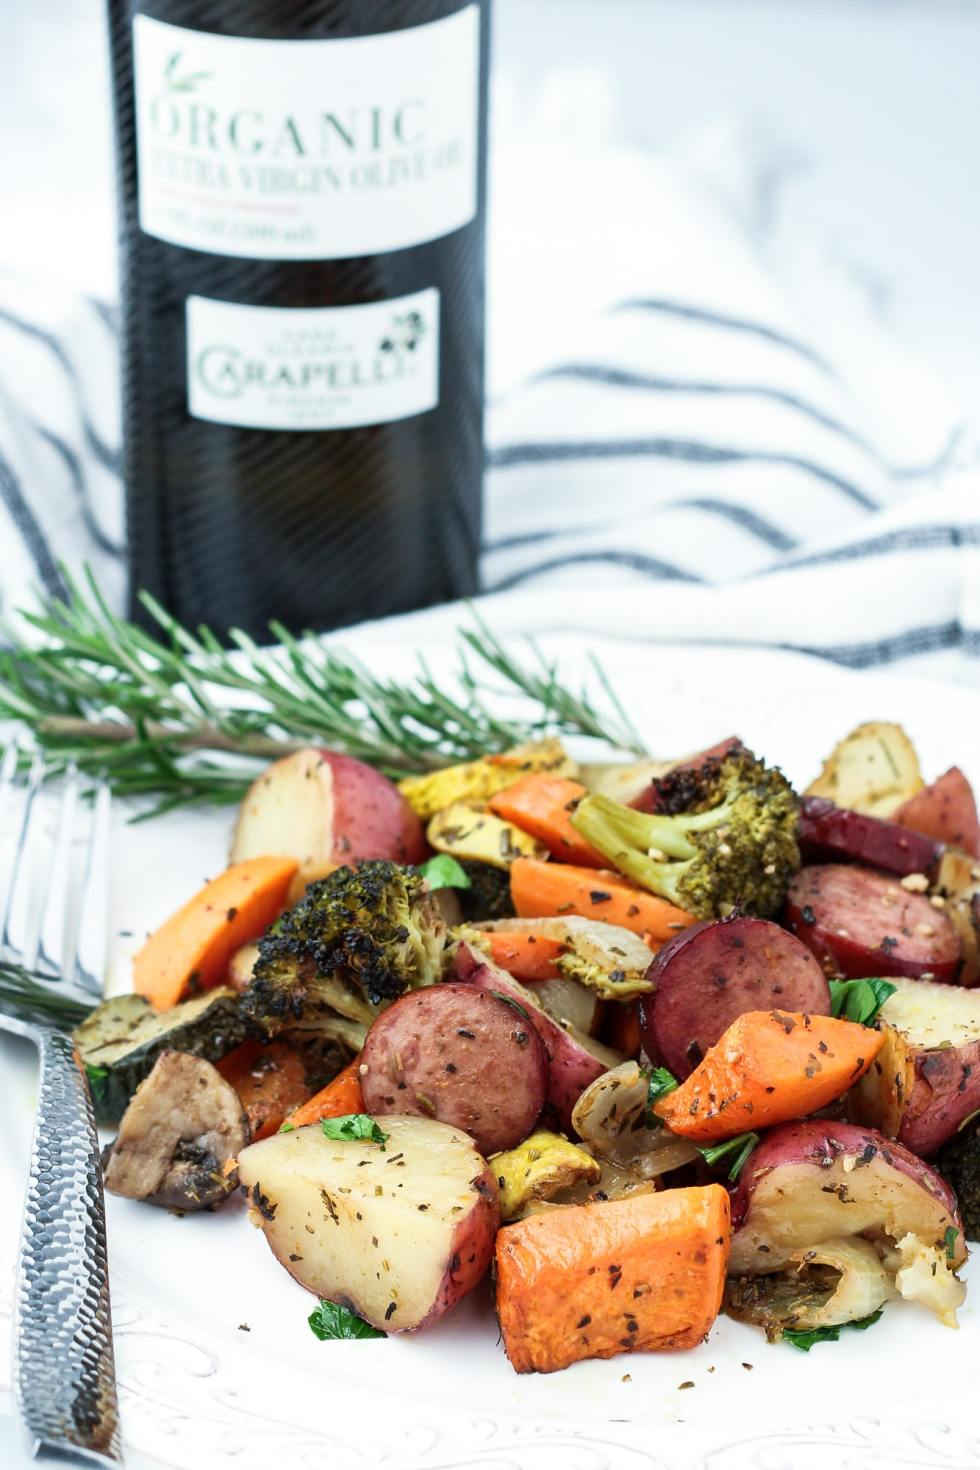 roasted vegetables and sausage with balsamic vinegar and herbs